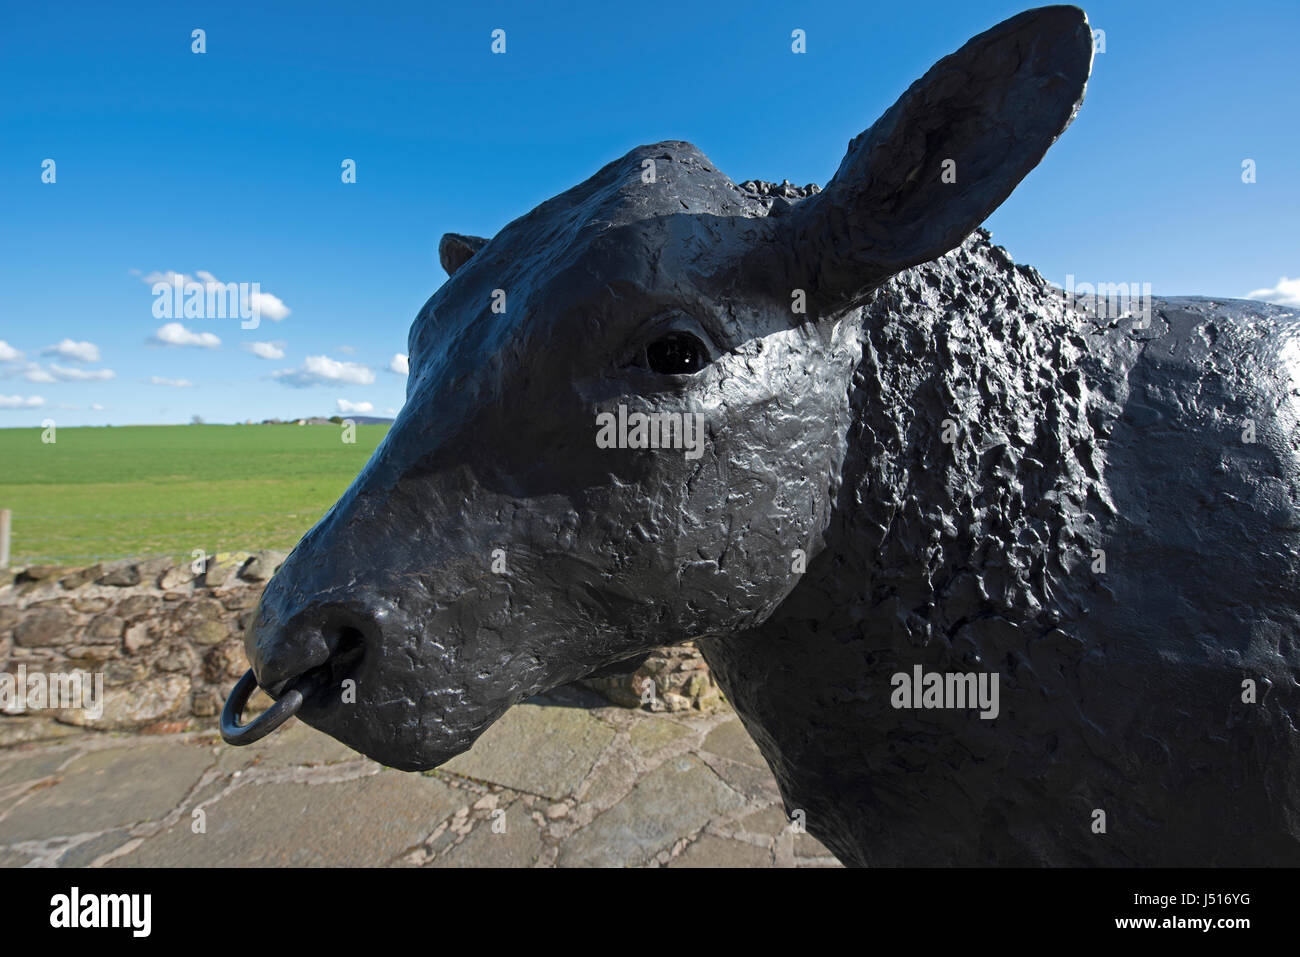 The Famous Black Bull Statue by the roadside at the East entrance to the Aberdeenshire town of Alford in Grampian - Stock Image